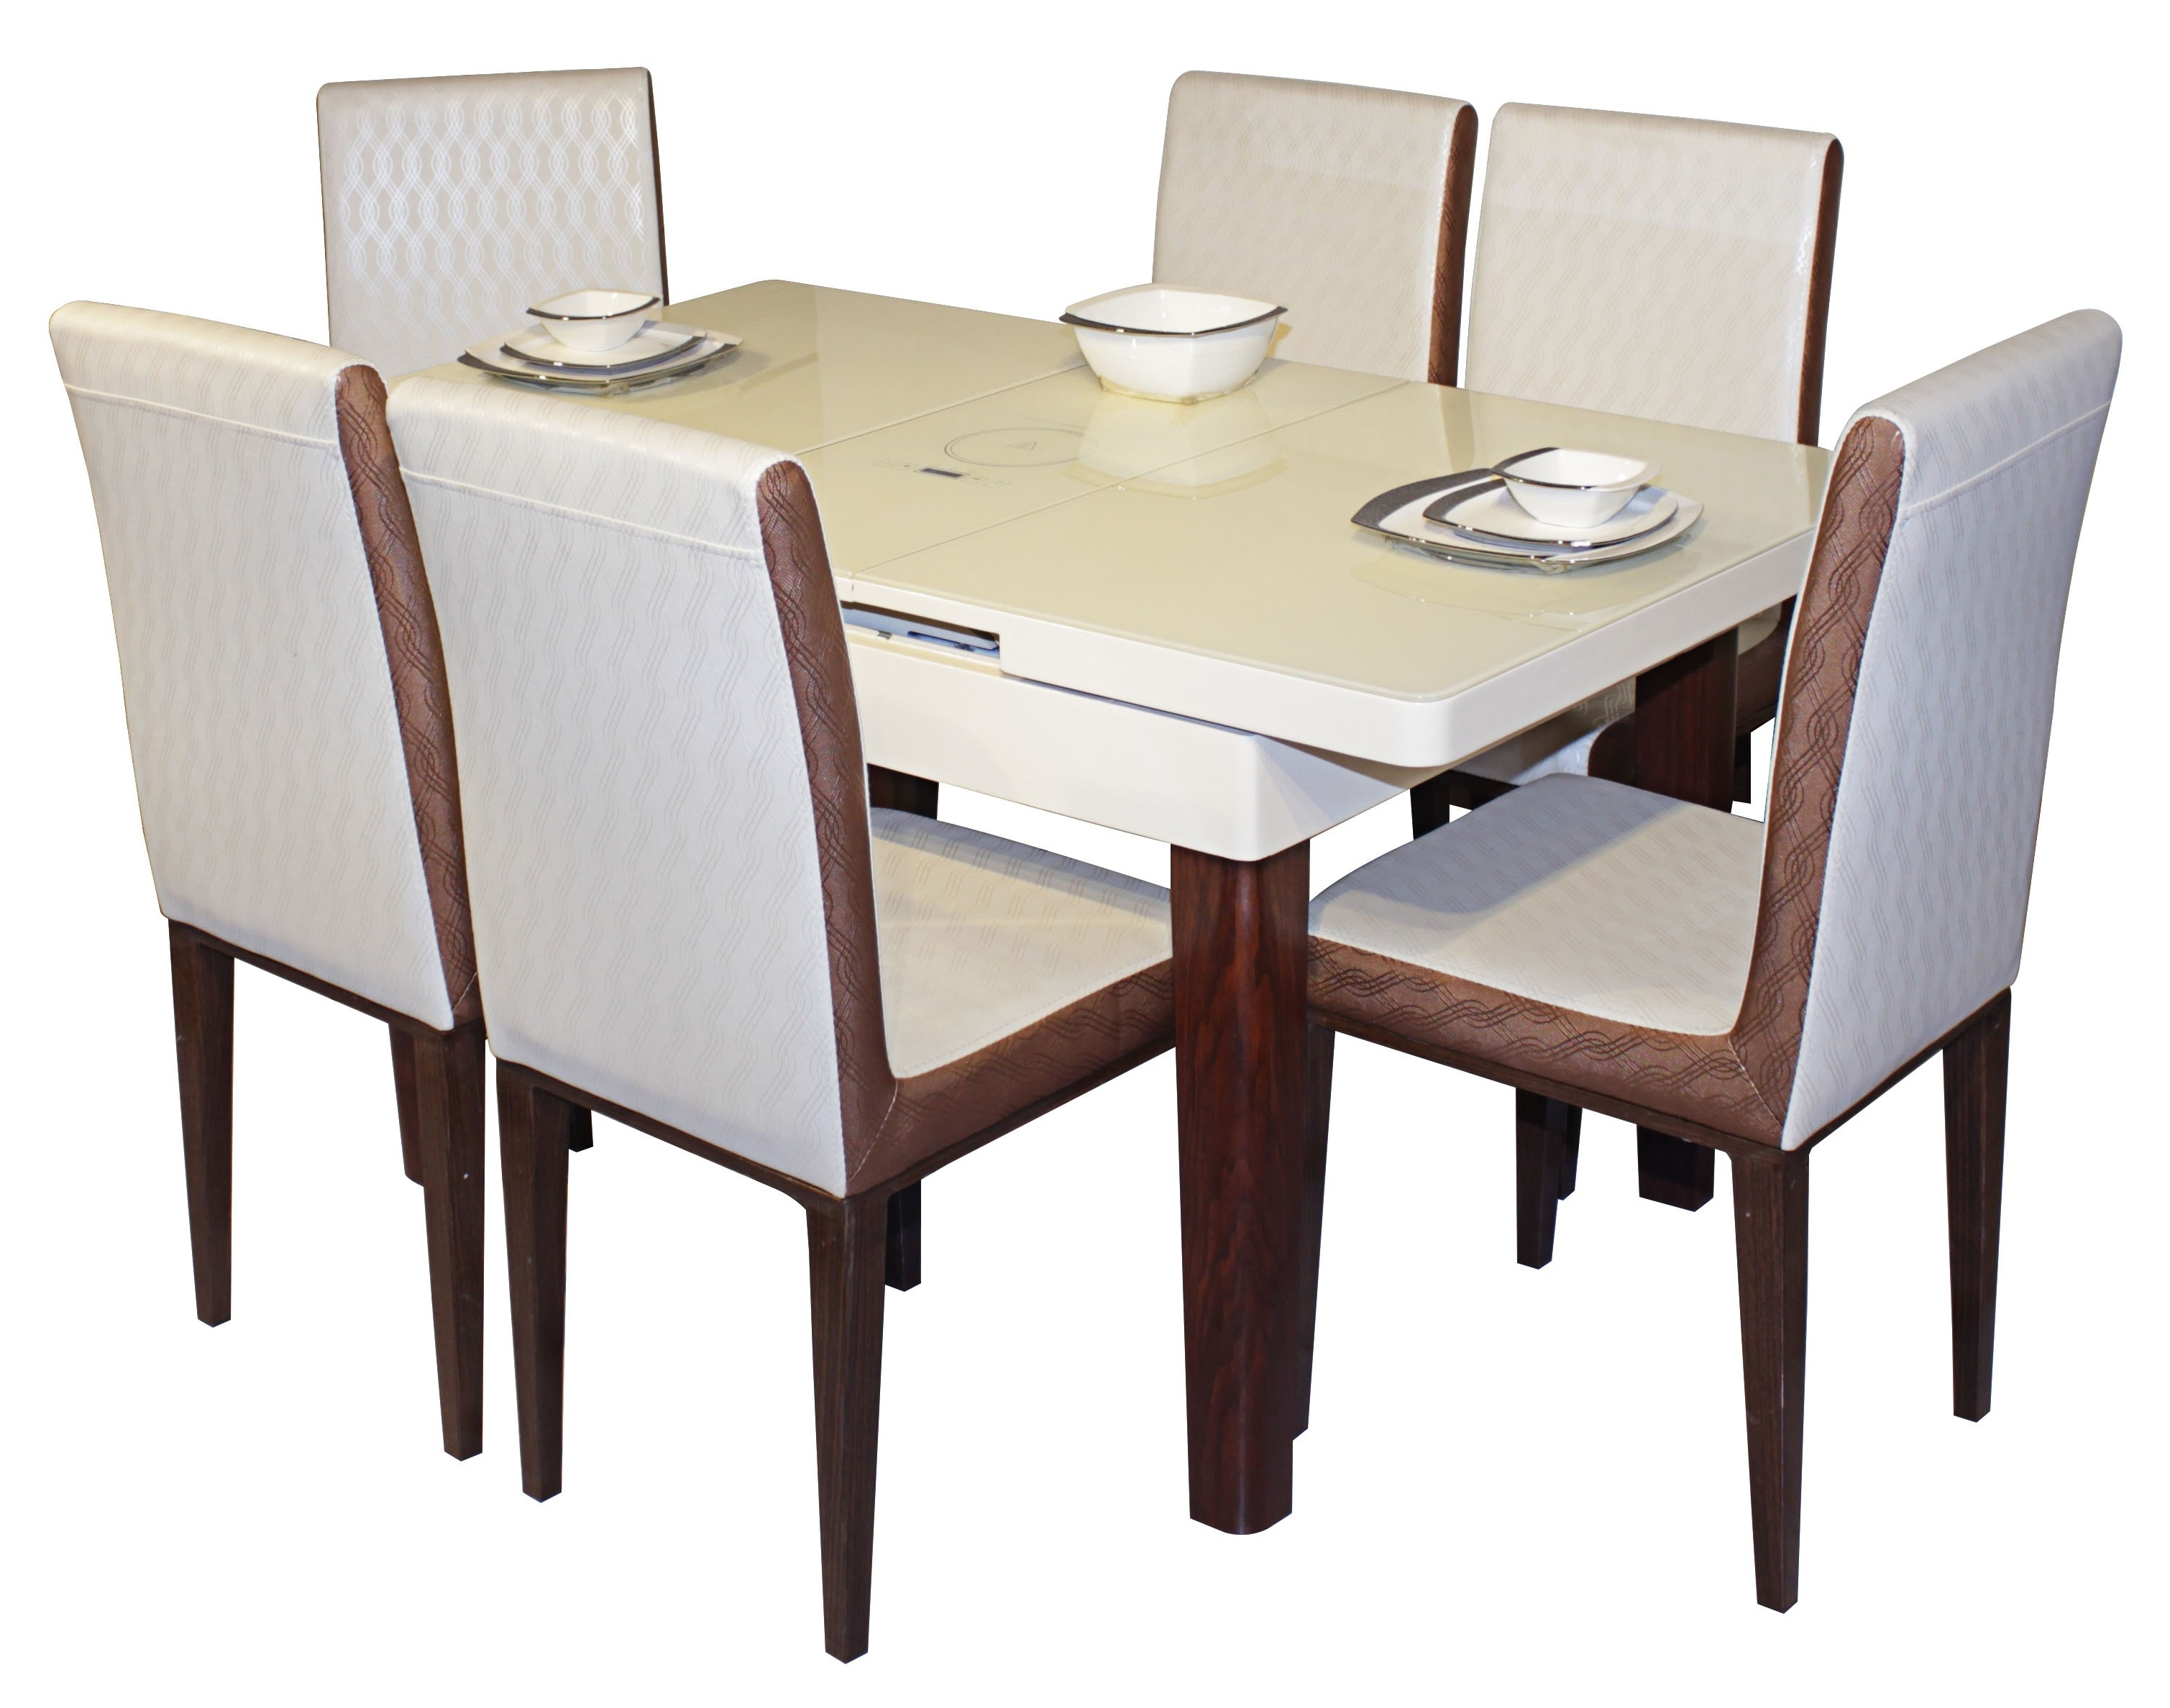 Galassia 6 Seater Dining Table Set Pertaining To Well Known 6 Seat Dining Tables And Chairs (View 13 of 25)